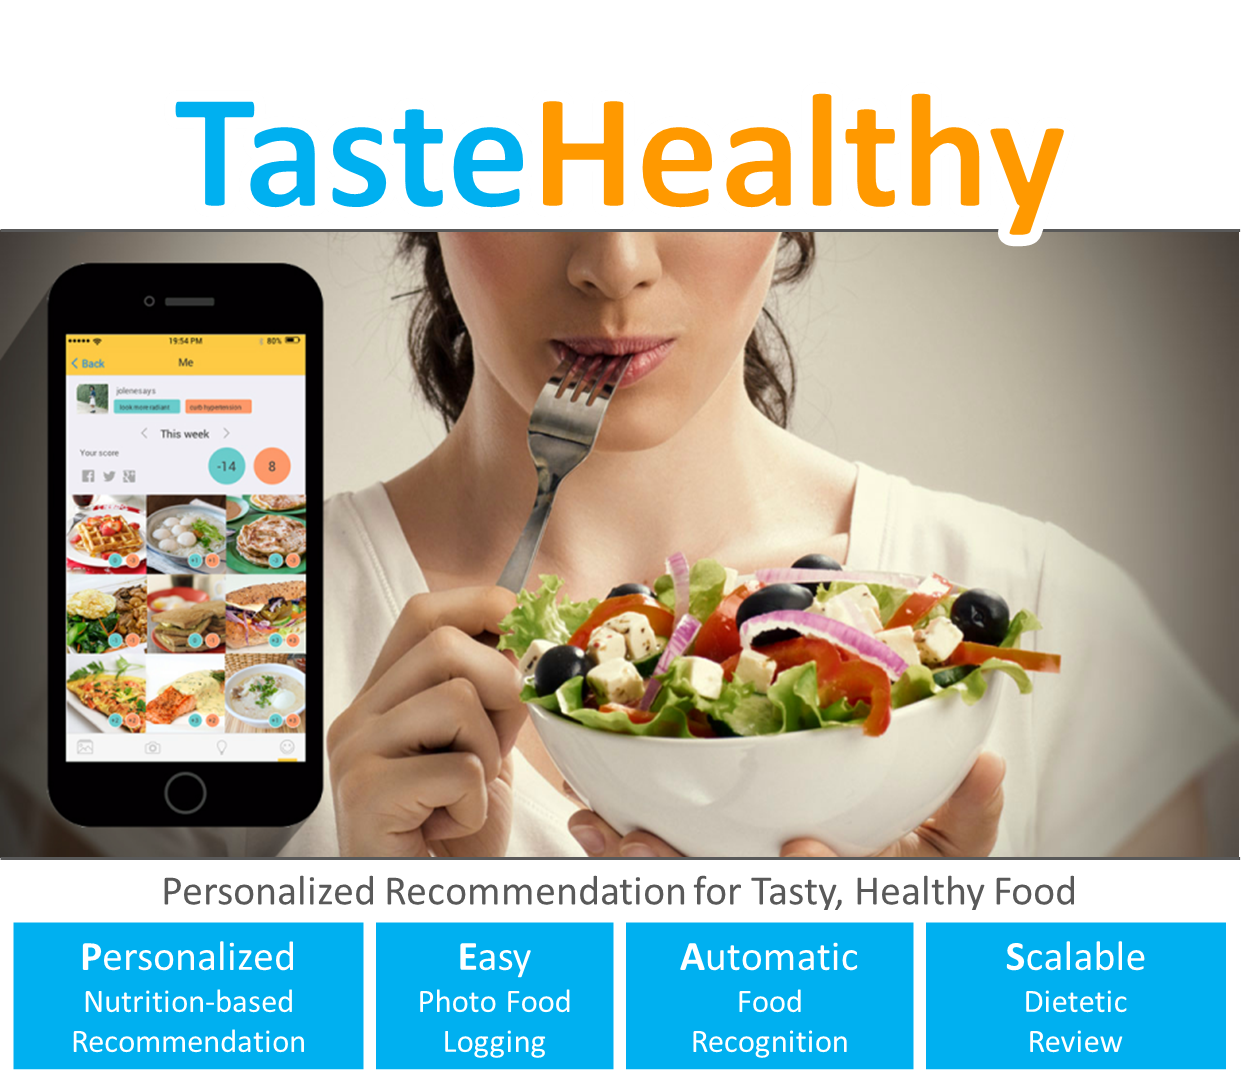 tastehealthy-card